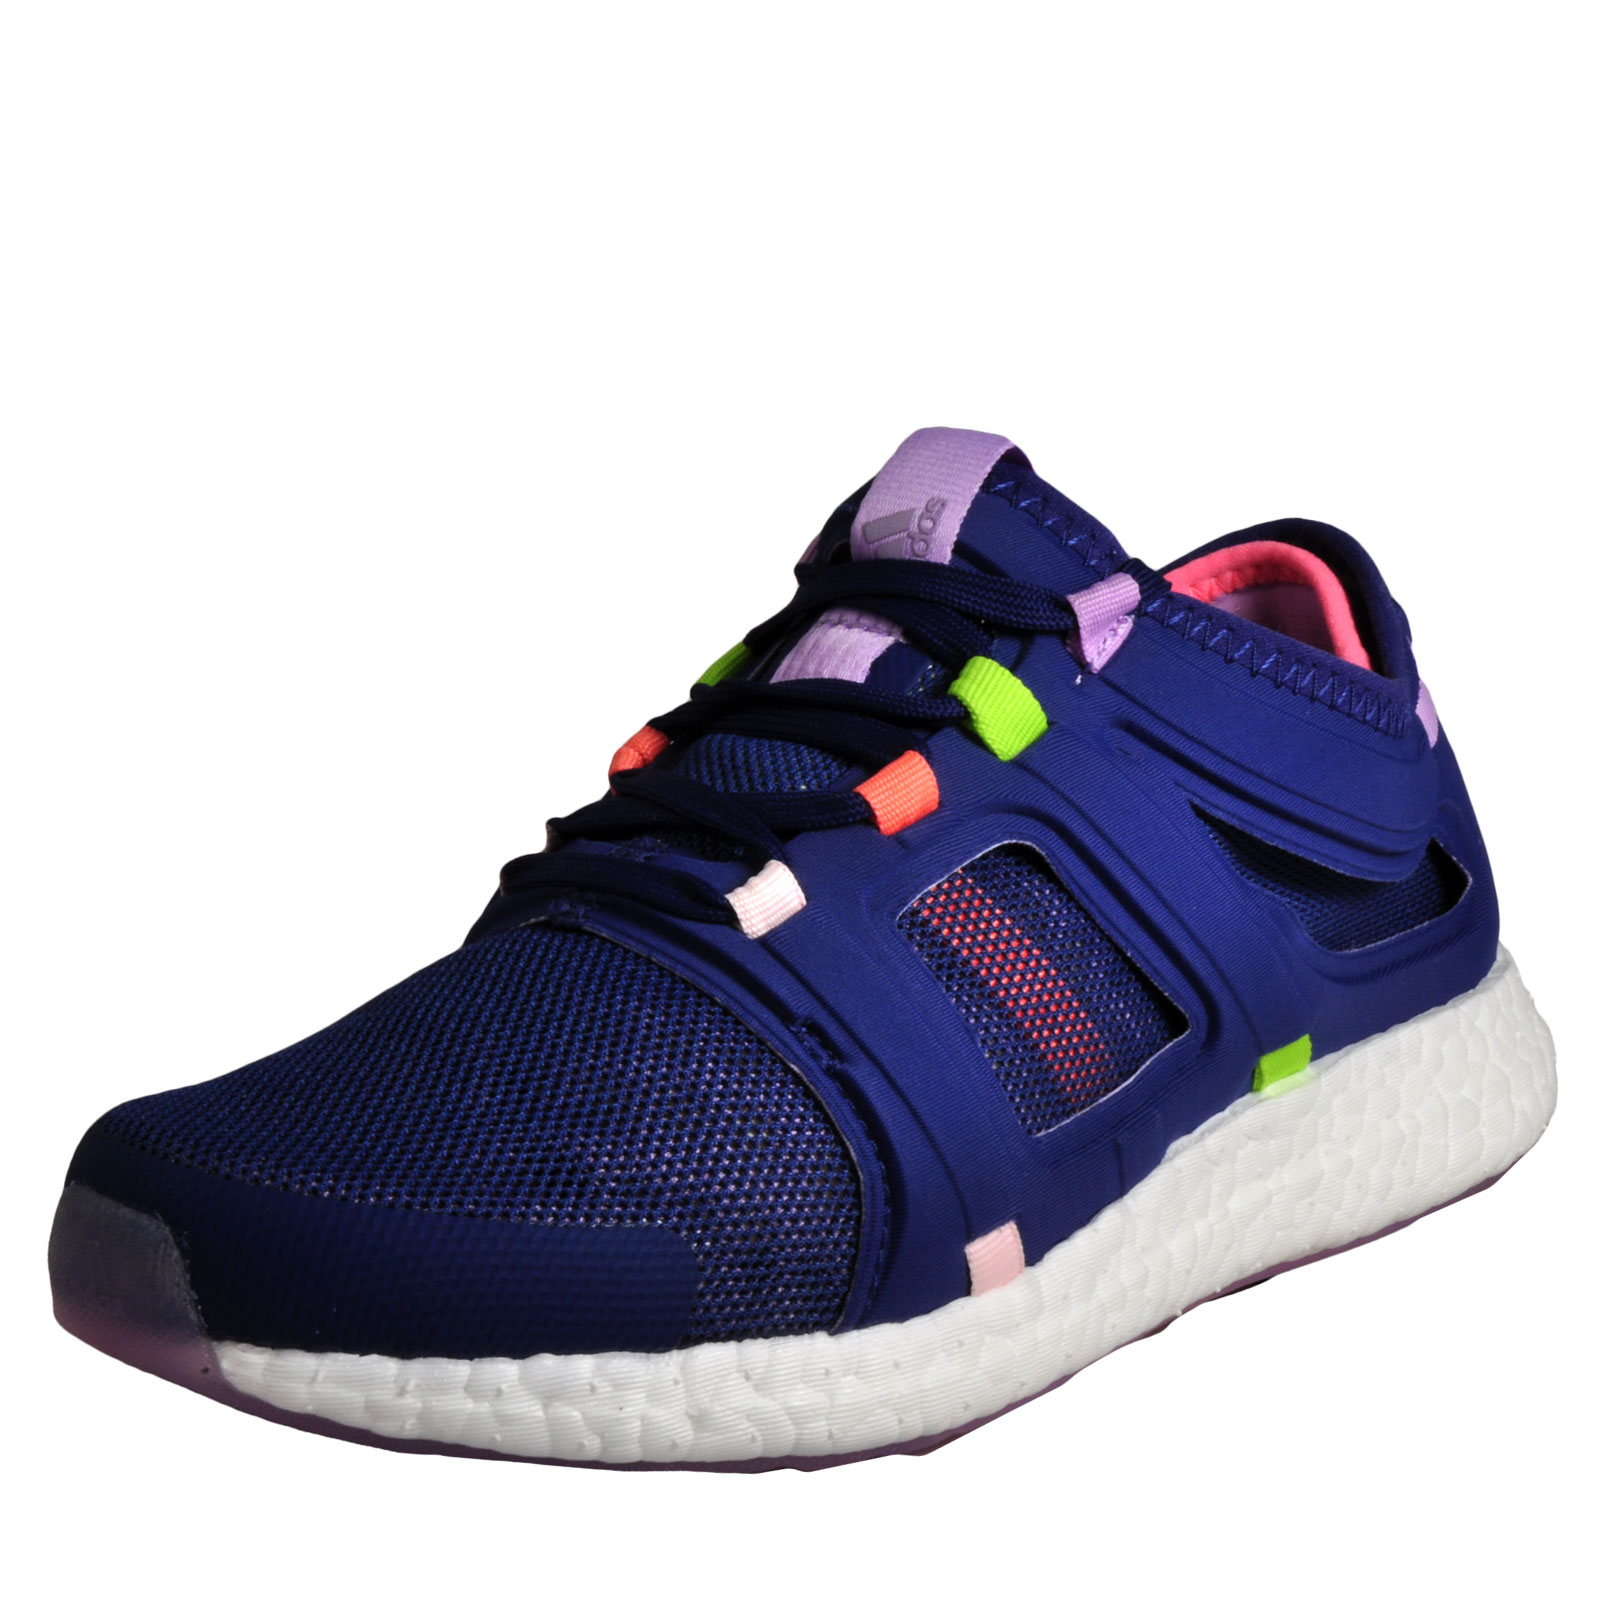 62e873bbbc626 Details about Adidas CC Rocket Boost Women s Running Shoes Fitness Gym  Workout Trainers Blue